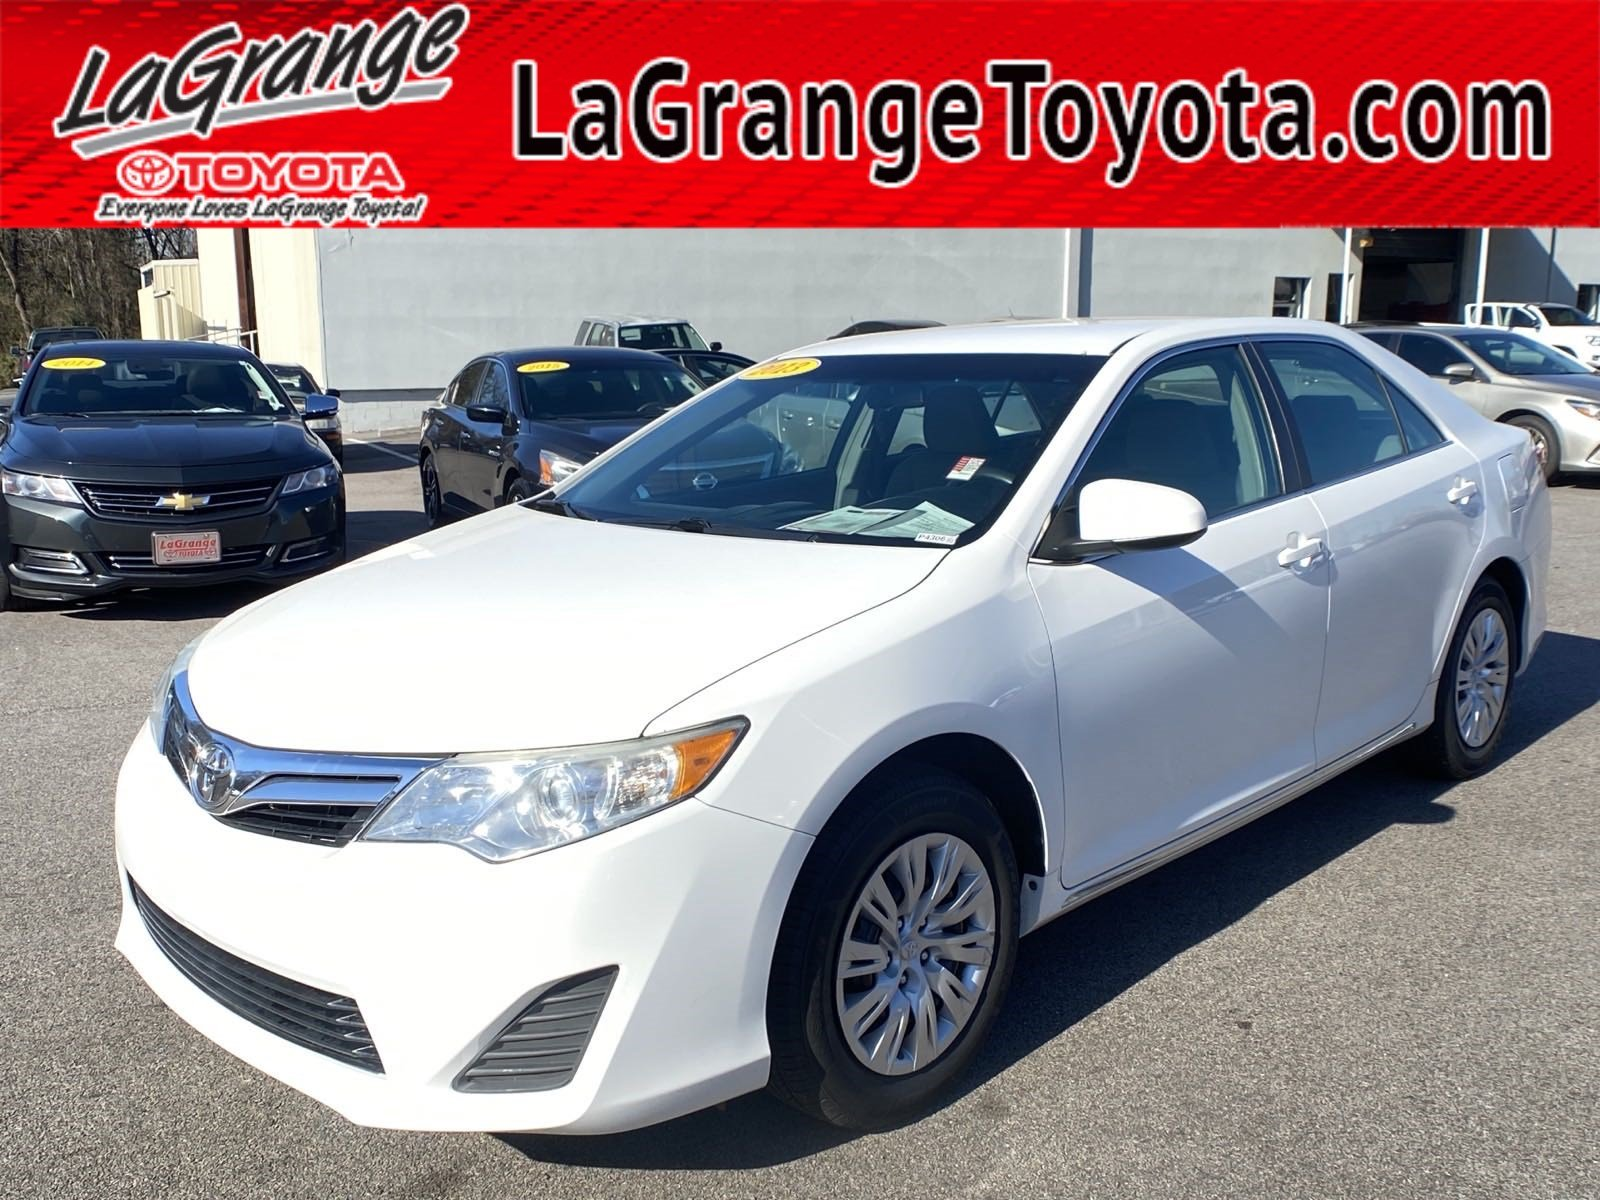 Pre-Owned 2013 Toyota Camry 4dr Sdn I4 Auto L